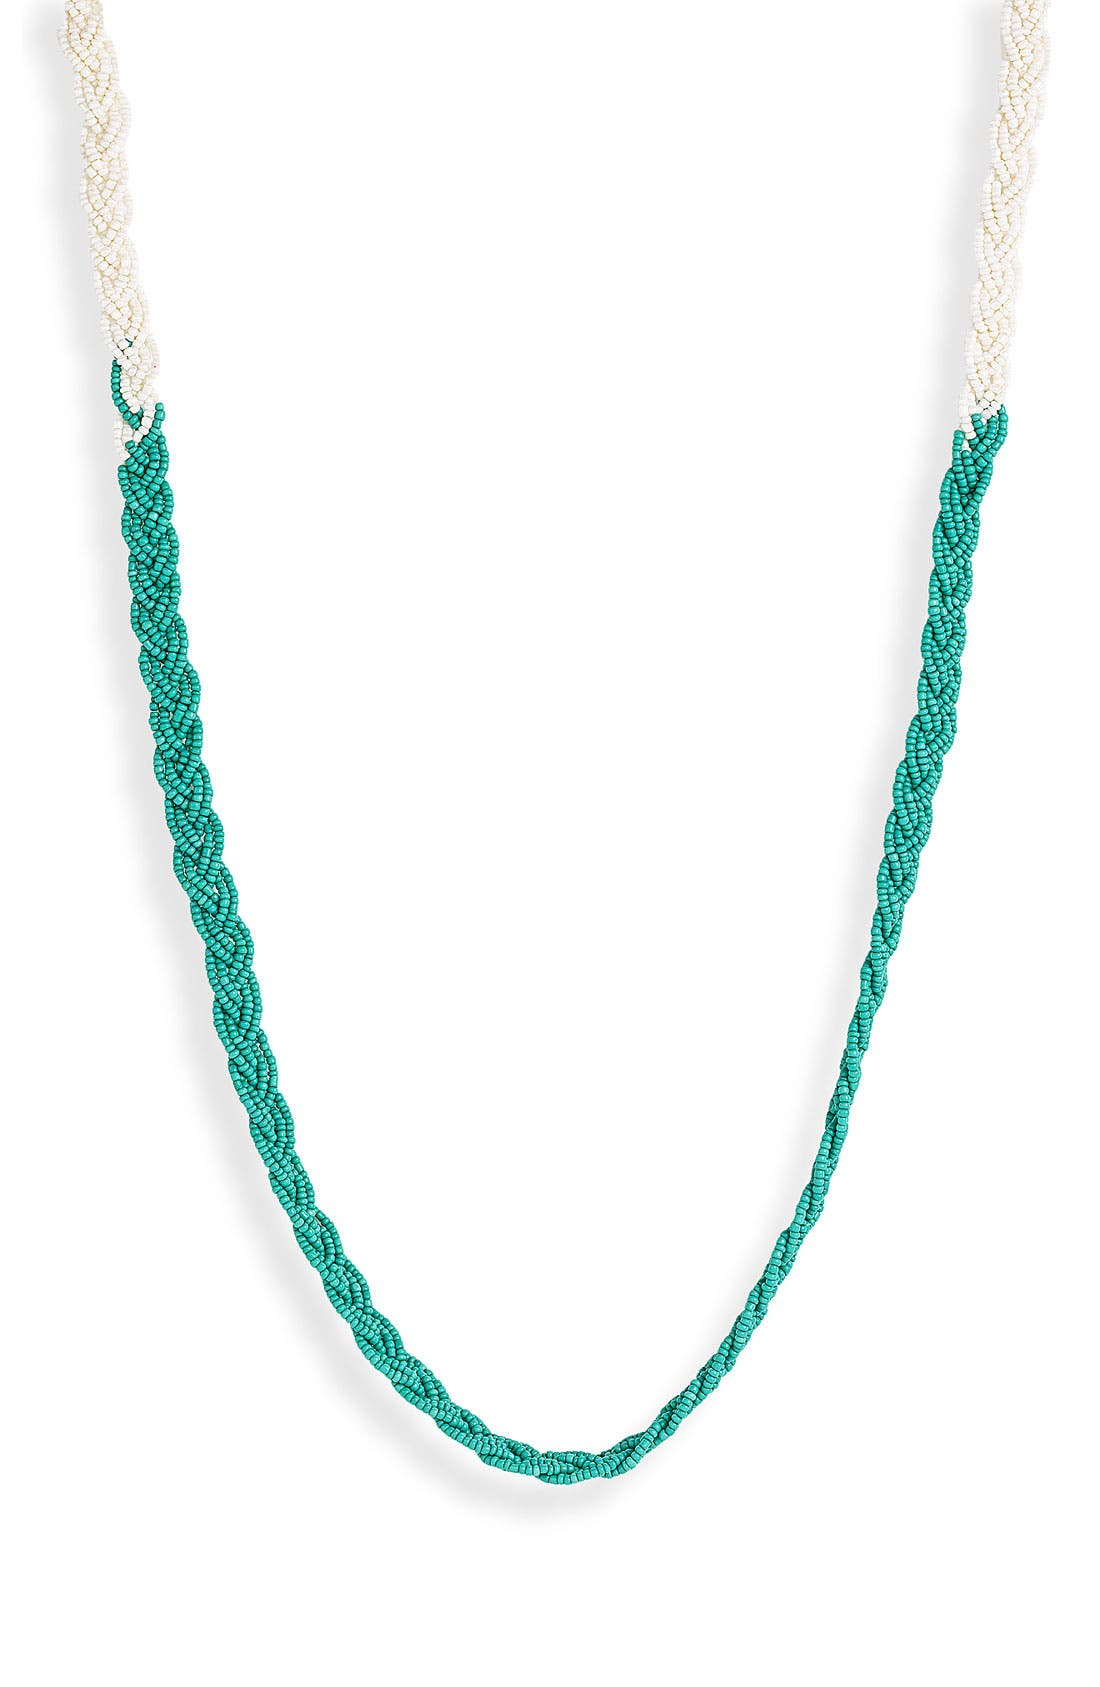 Alternate Image 1 Selected - Stephan & Co. Braided Seed Bead Necklace